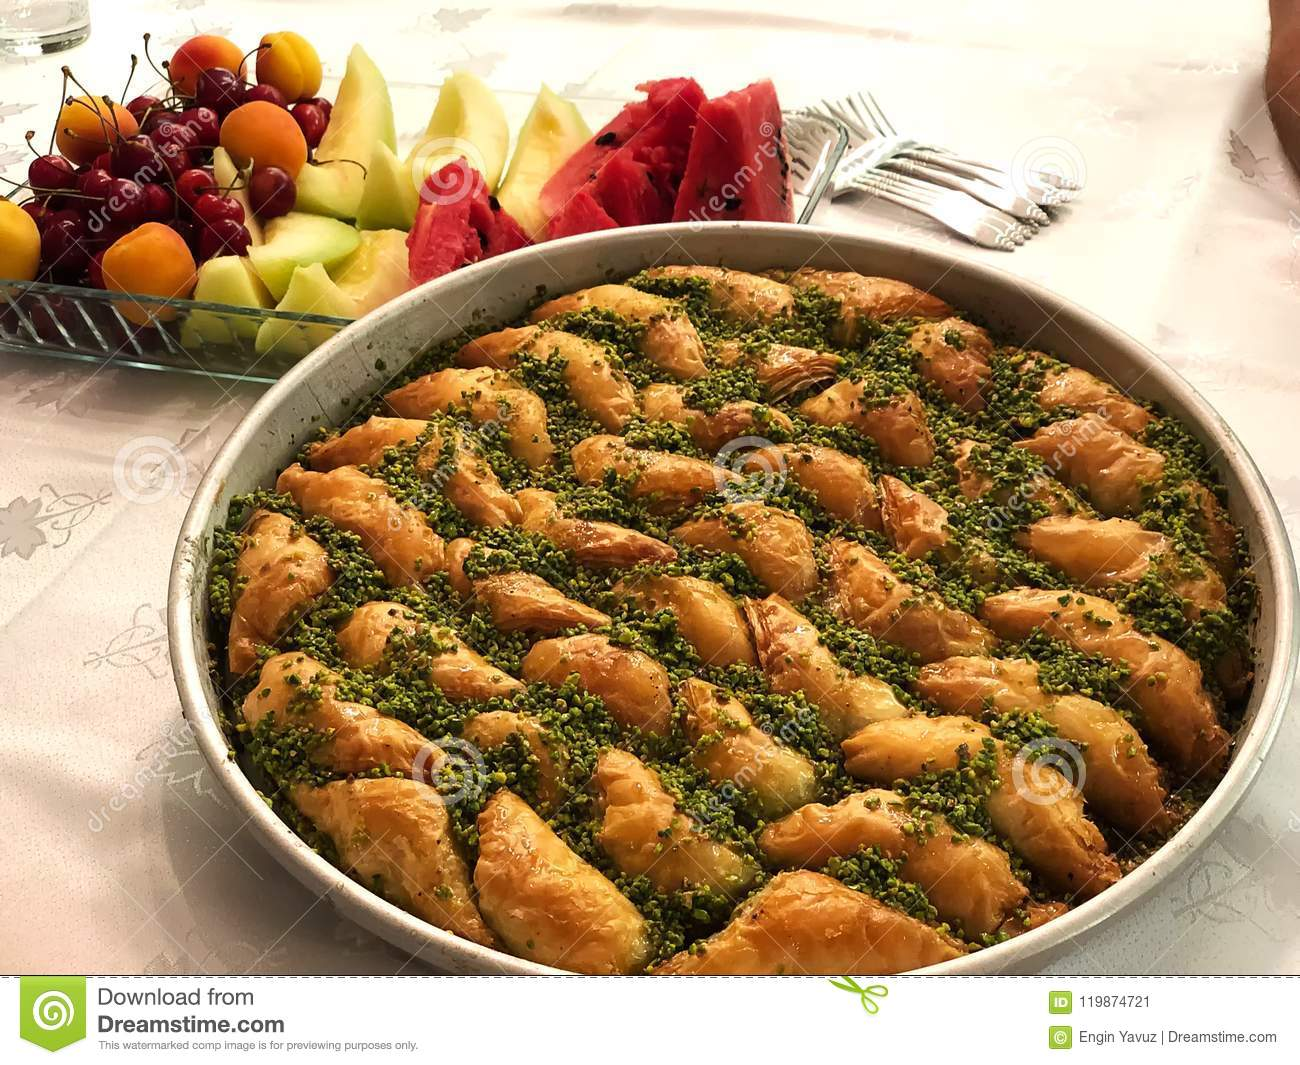 Baklava and Fruits.Turkish important dessert.